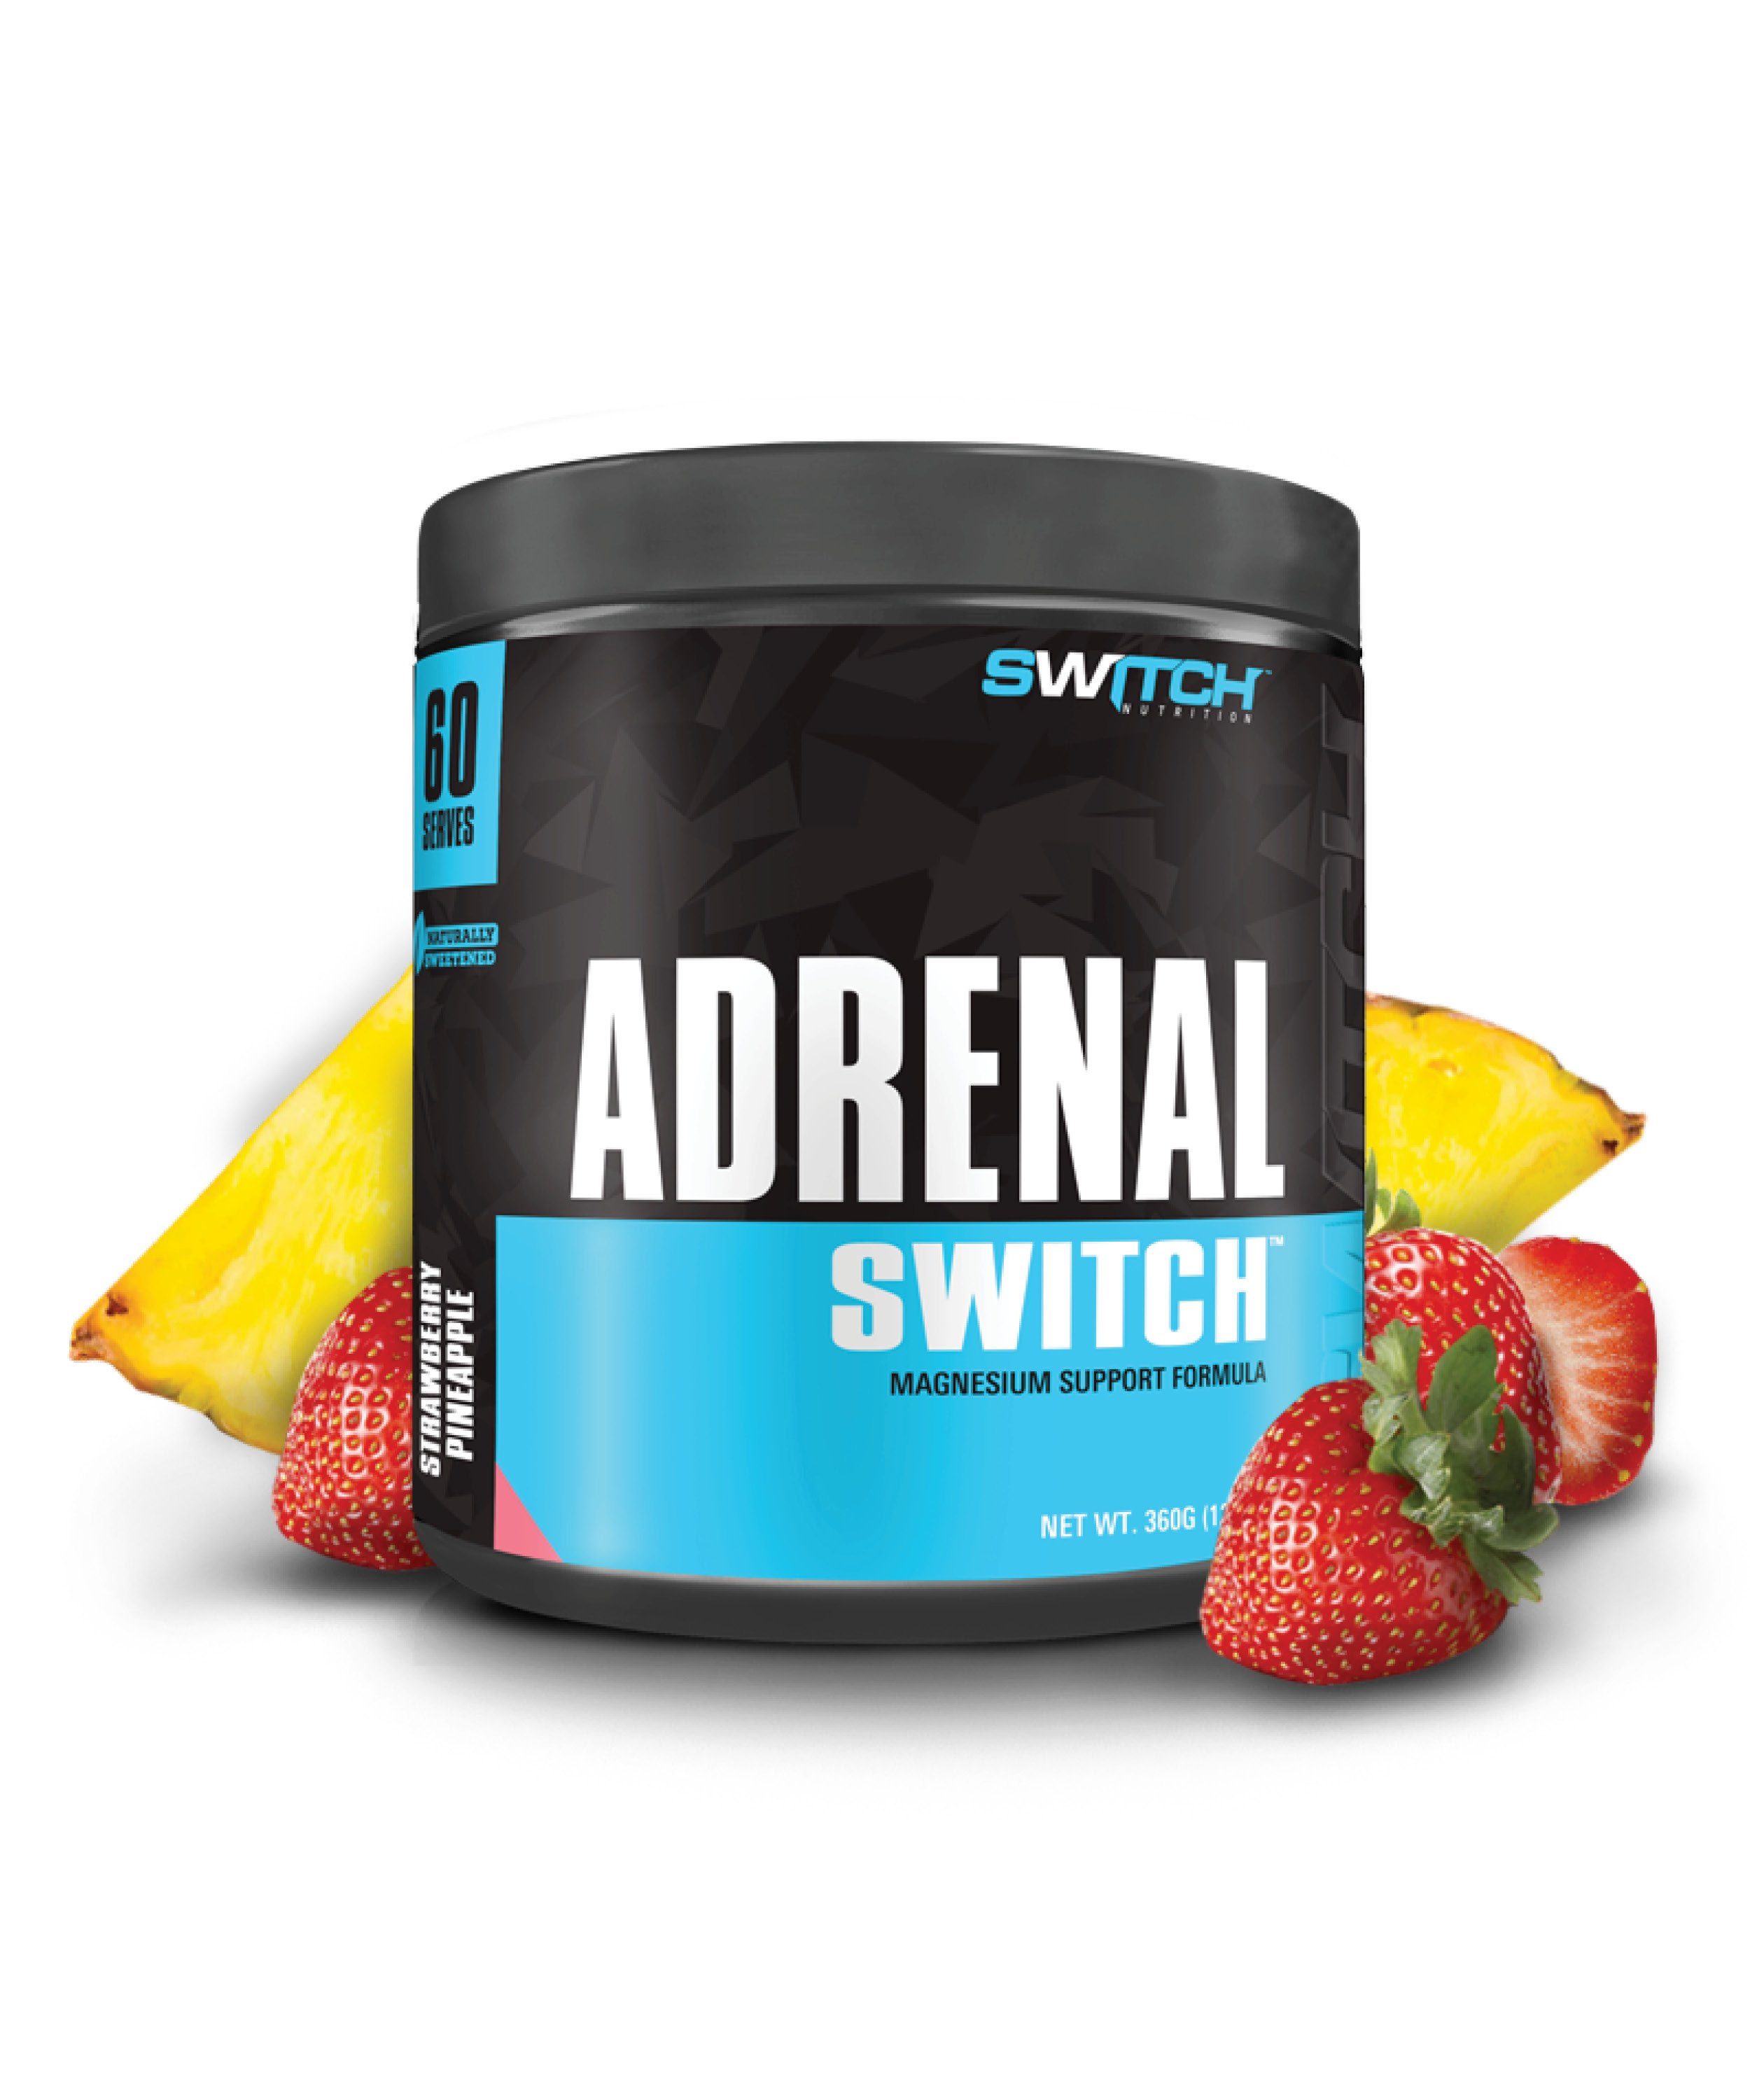 Adrenal Strawberry Pineapple